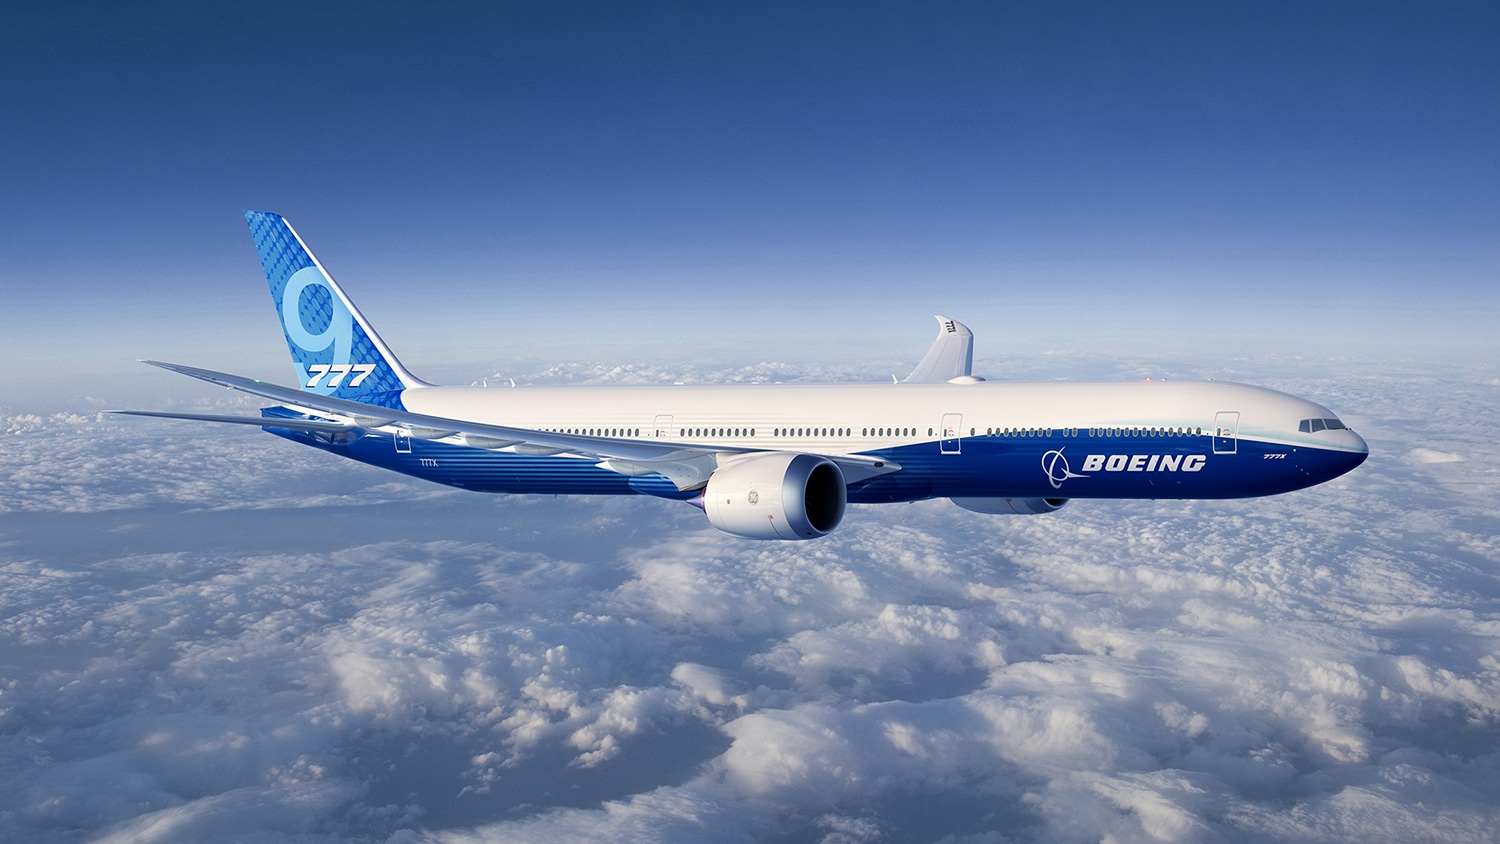 First maiden flight of Boeing 777X, world's largest twin-engine jet